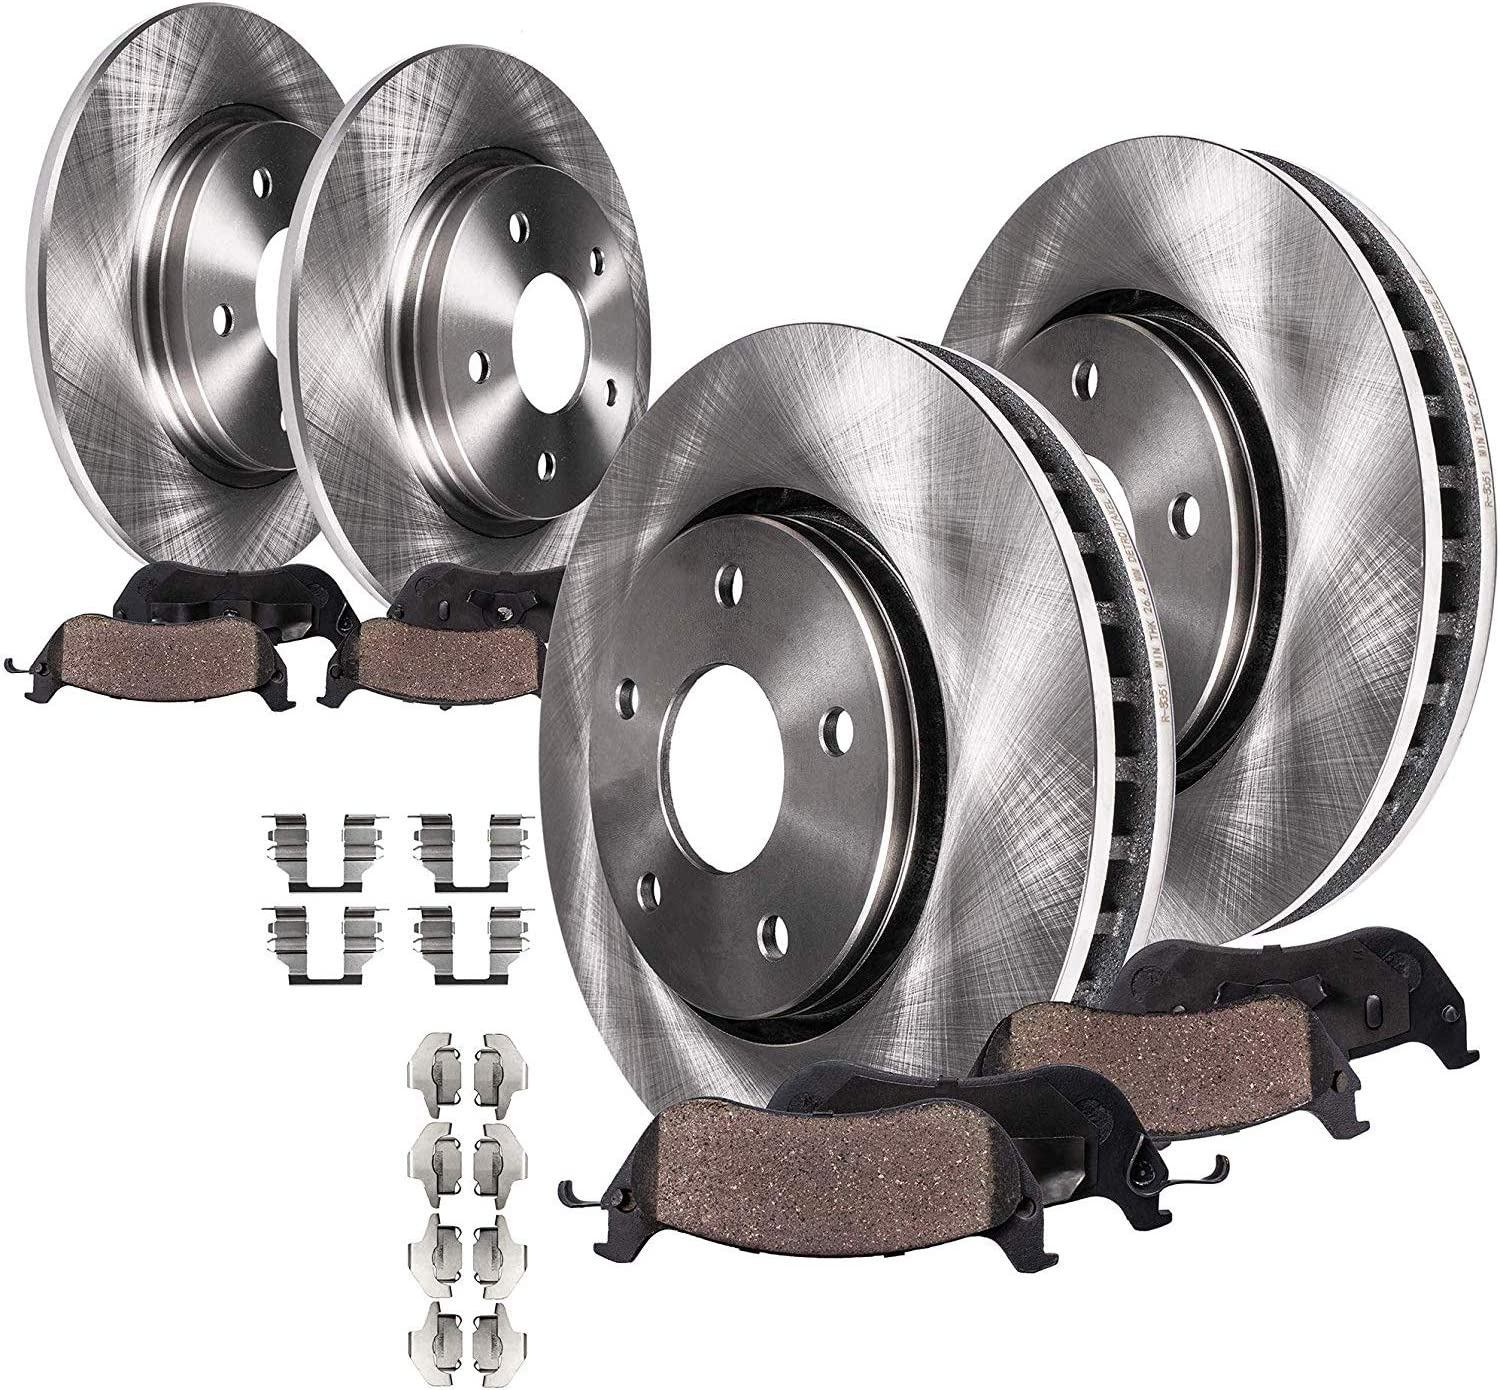 1999 For Volkswagen Jetta Rear Brake Rotors and Brake Pads